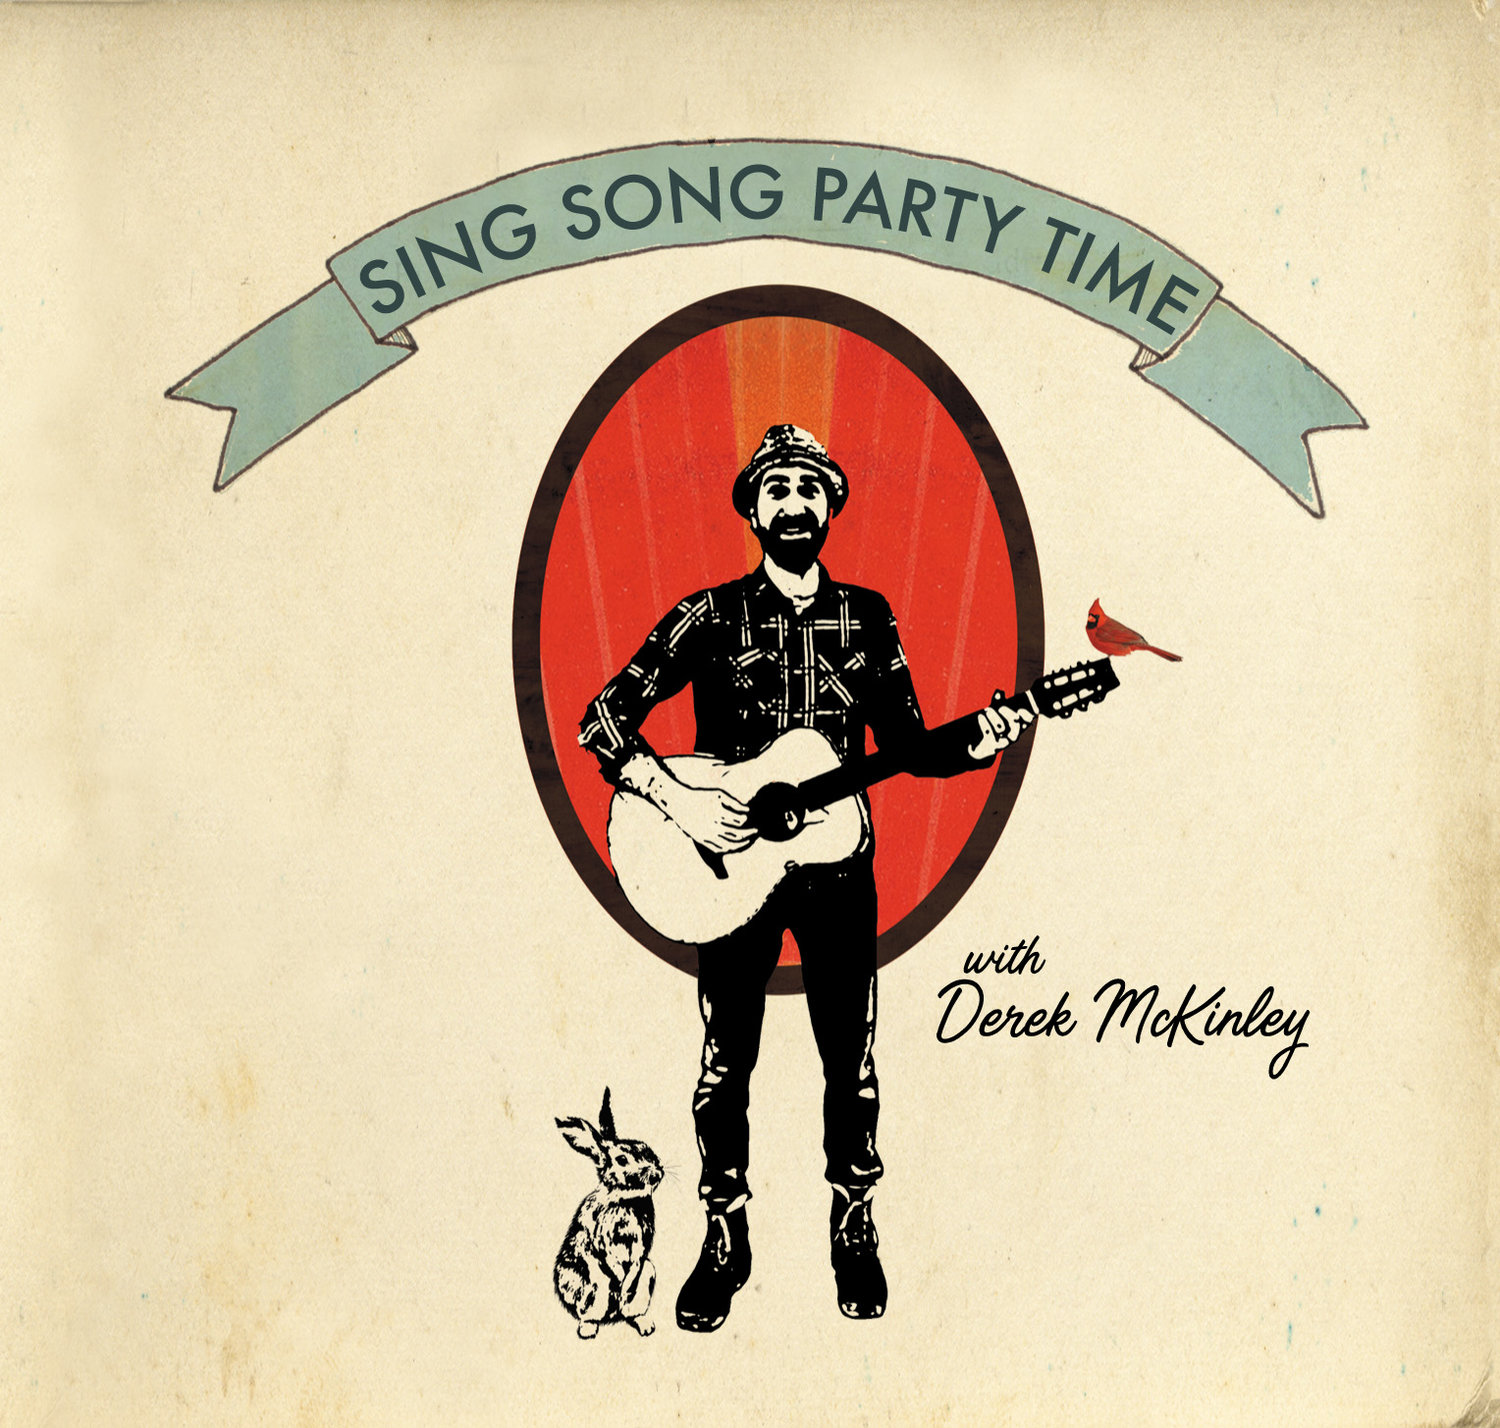 'Sing Song Party Time' with Derek McKinley!